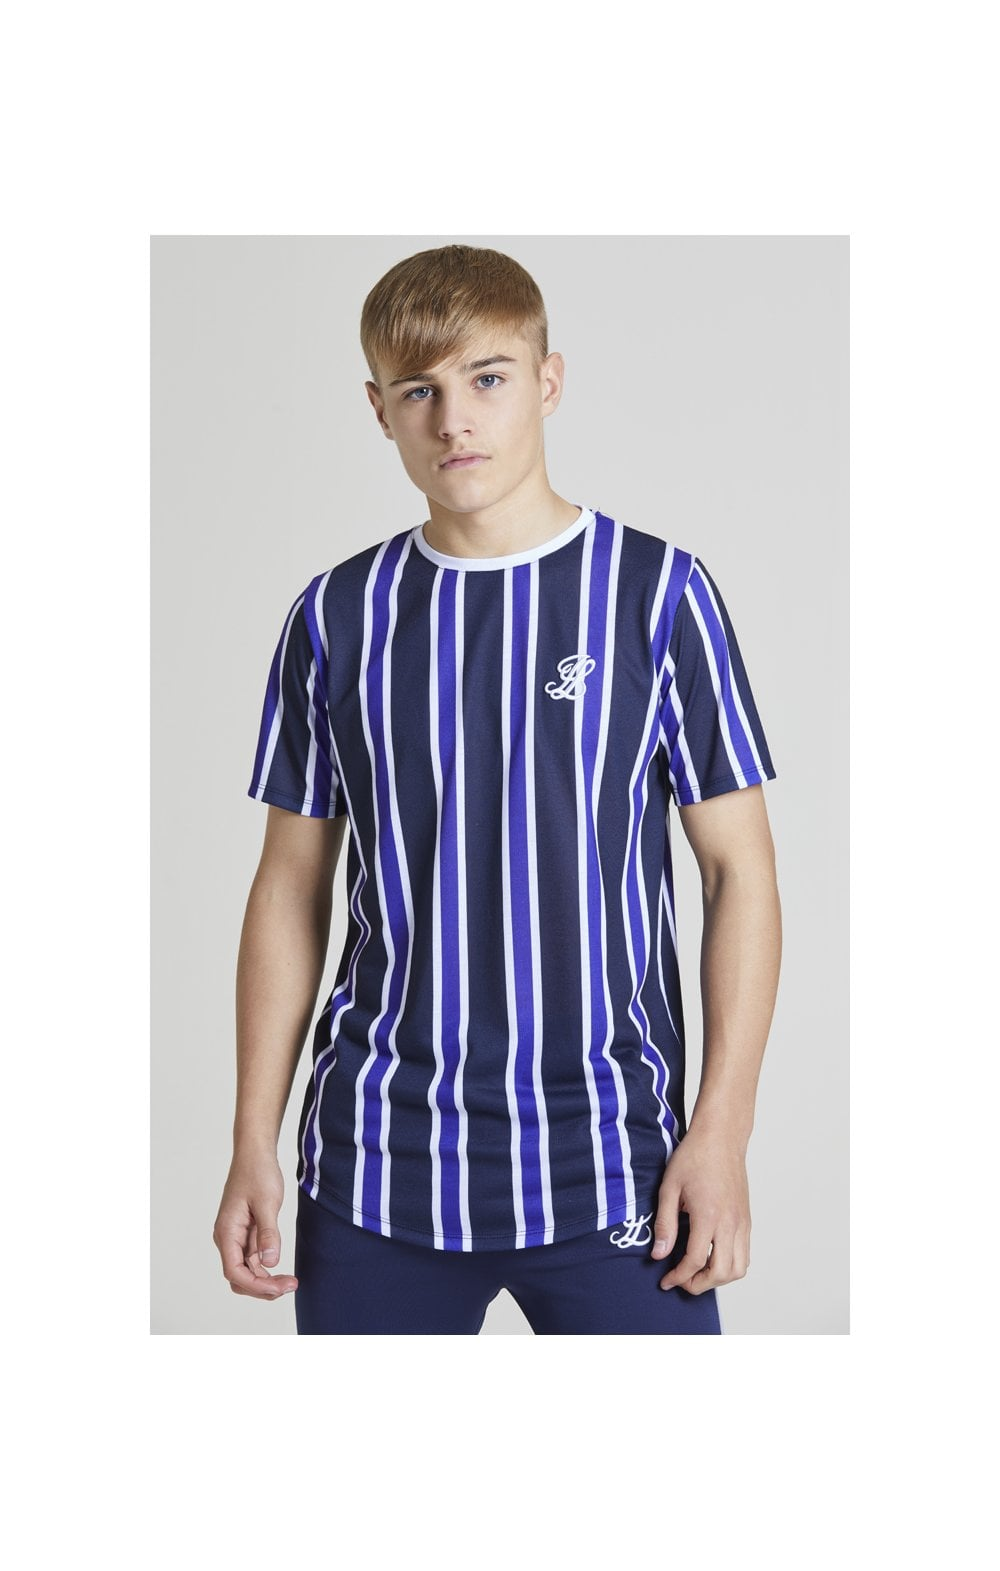 Load image into Gallery viewer, Illusive London Stripe tee - Navy, Purple & White (1)